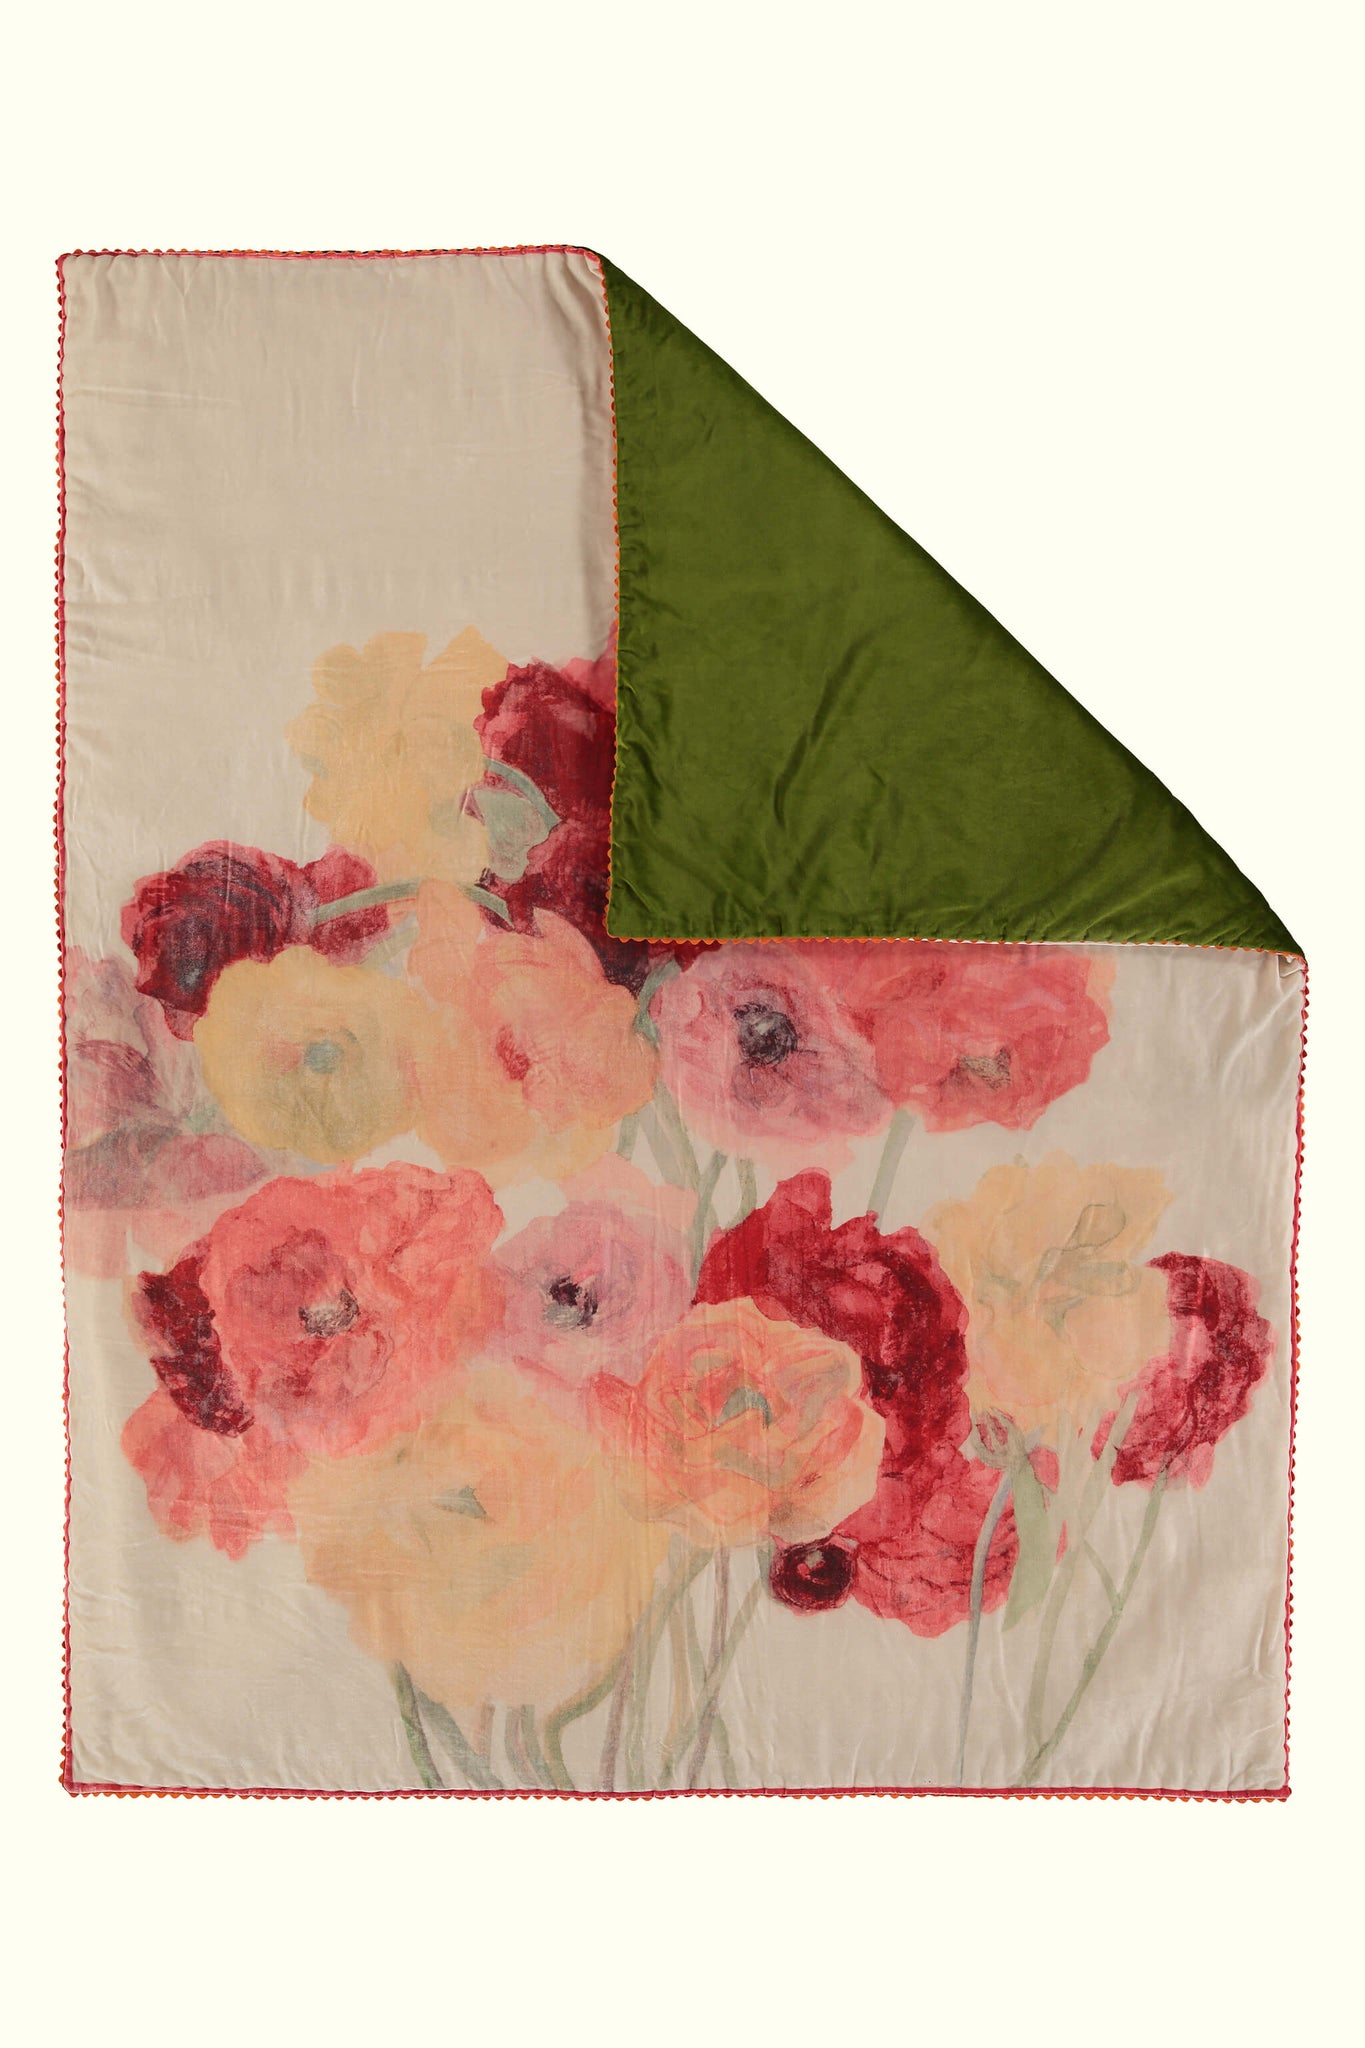 A luxury British silk velvet bed throw by GVE in cream and scarlet Ranunculus print design.